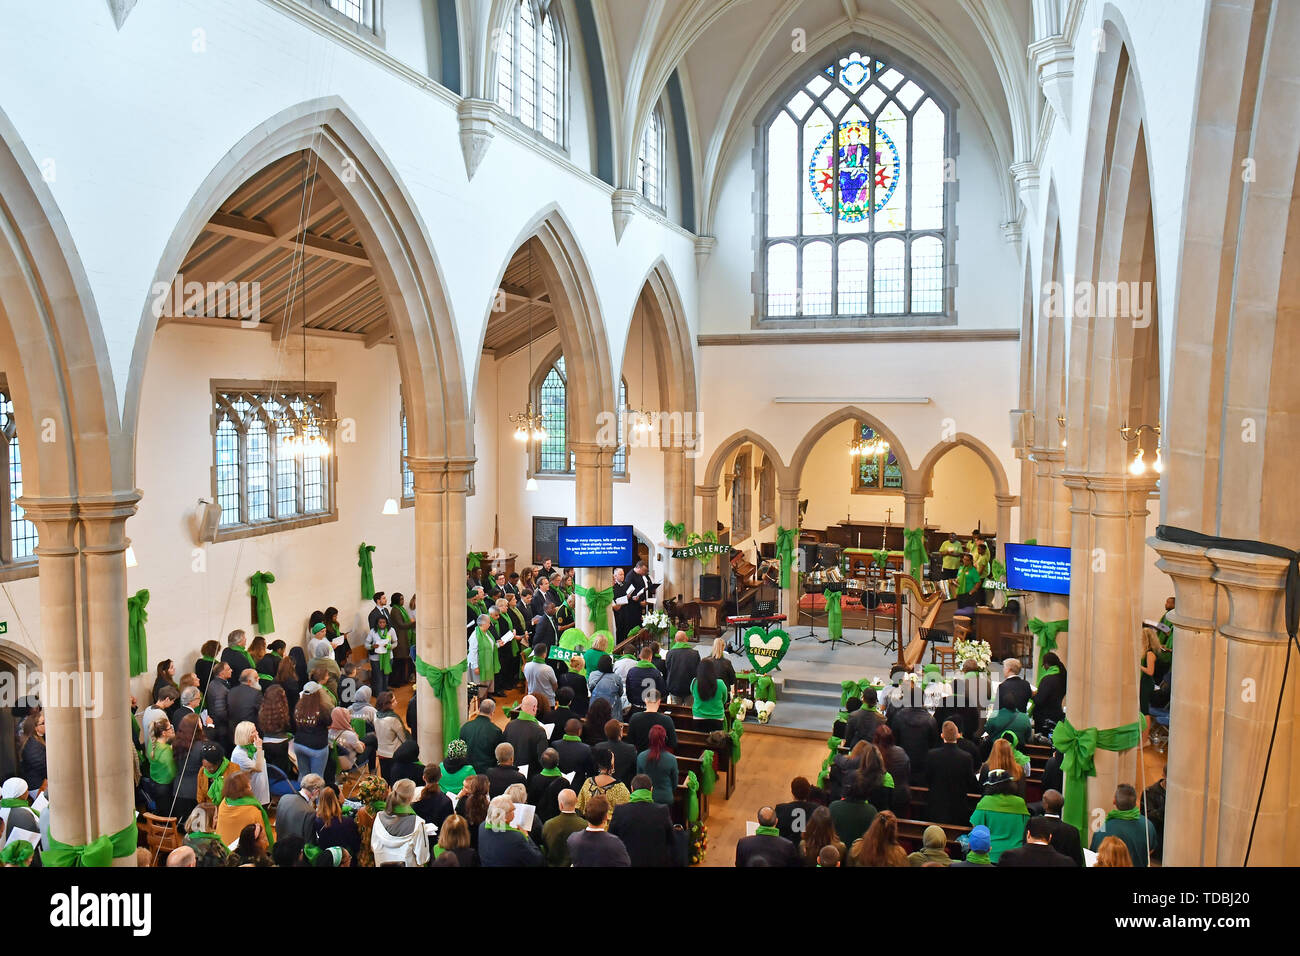 A service of remembrance takes place at St Helens church, London, to mark the two-year anniversary of the Grenfell Tower block fire. - Stock Image